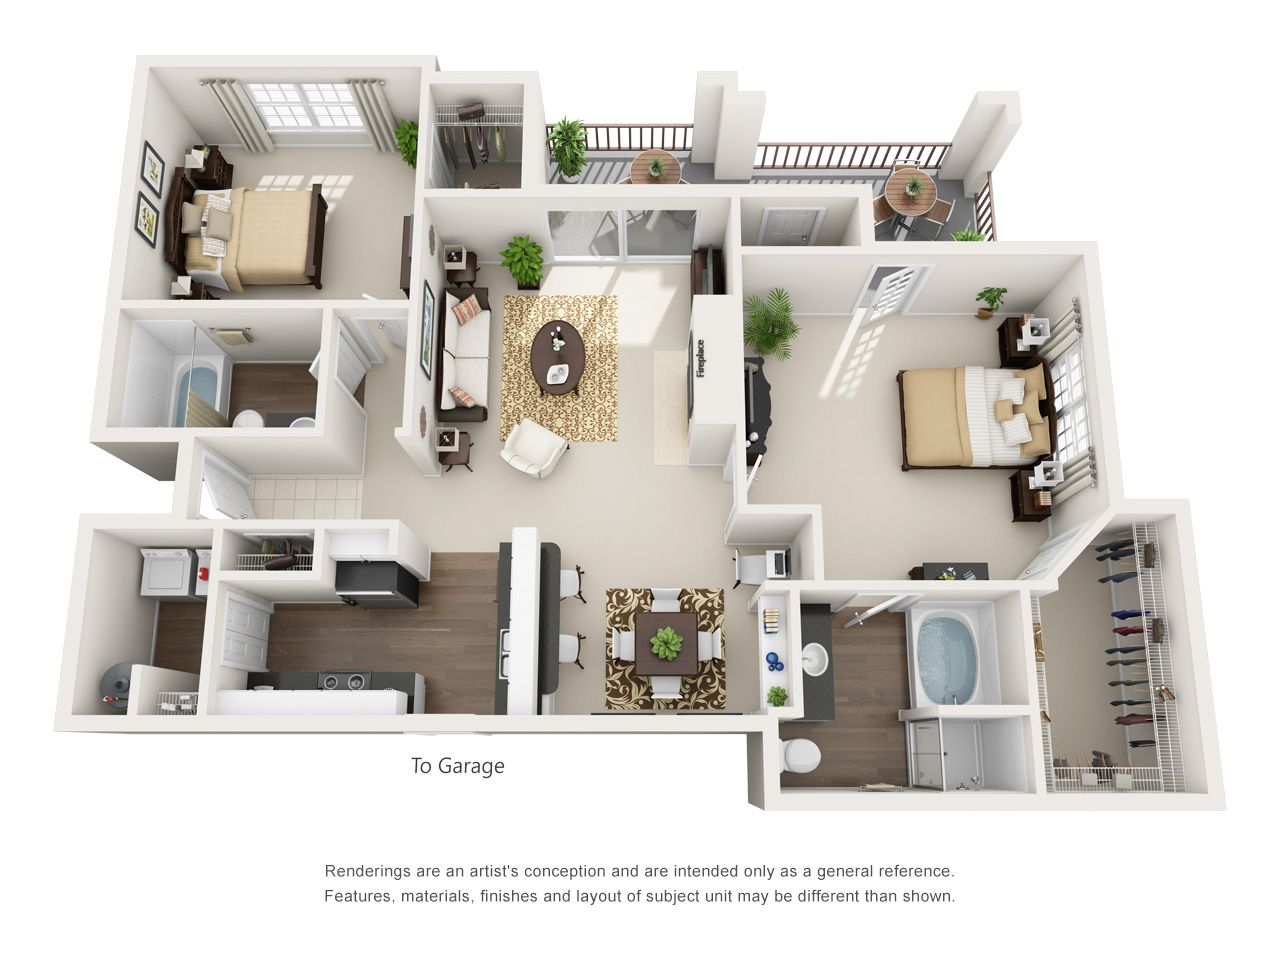 One Two And Three Bedroom Apartments In Euless Tx Euless Texas Apartment Steadfast Small Apartment Floor Plans Apartment Layout Apartment Floor Plans